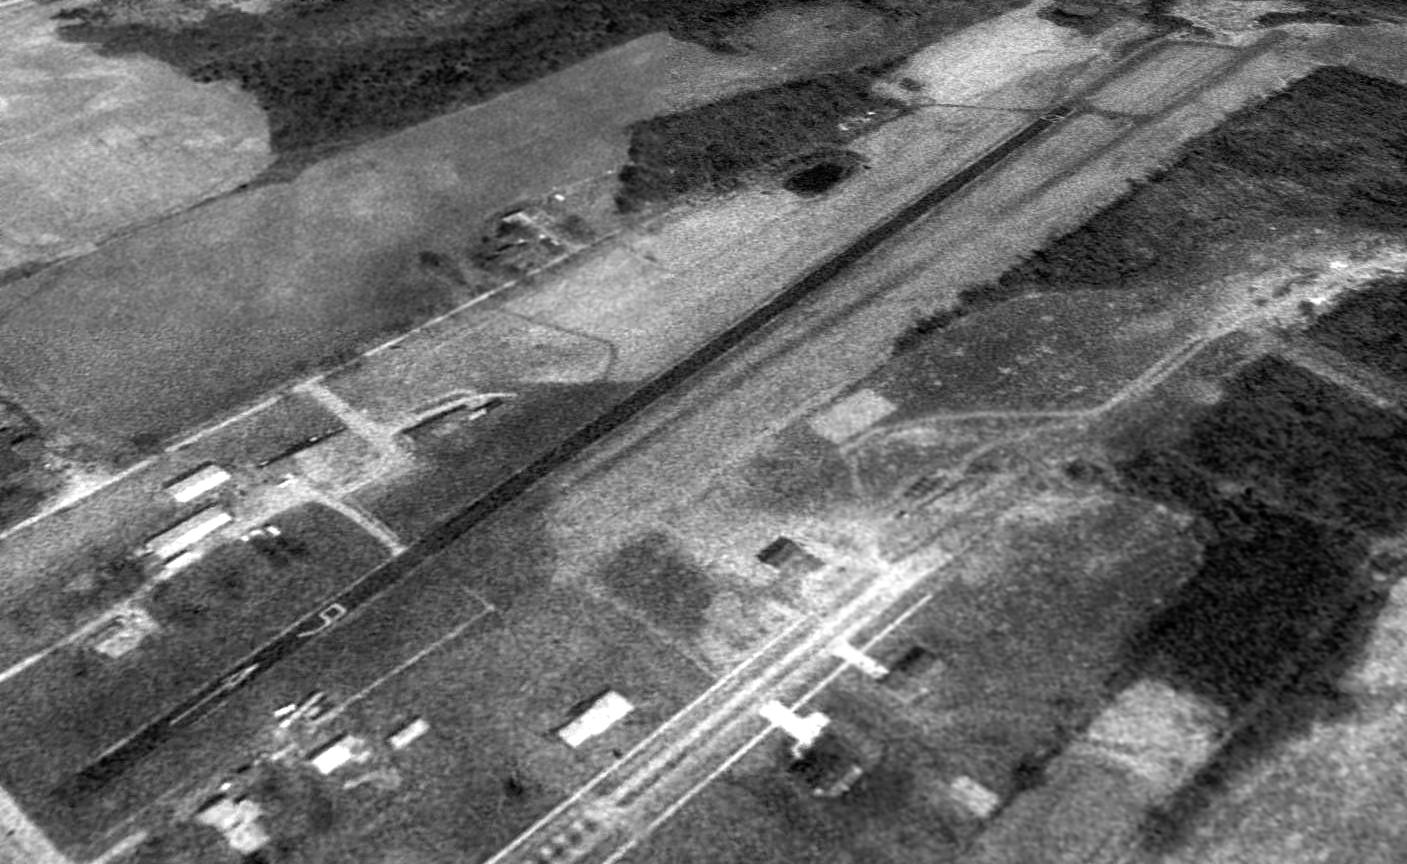 Abandoned Little Known Airfields Southwestern Ohio 1972 Amc Javelin Wiring Diagram A 1994 Usgs Aerial View Looking Northeast Depicted Brownies As Having Single Asphalt Runway 9 27 With Very Closely Aligned Grass To The South